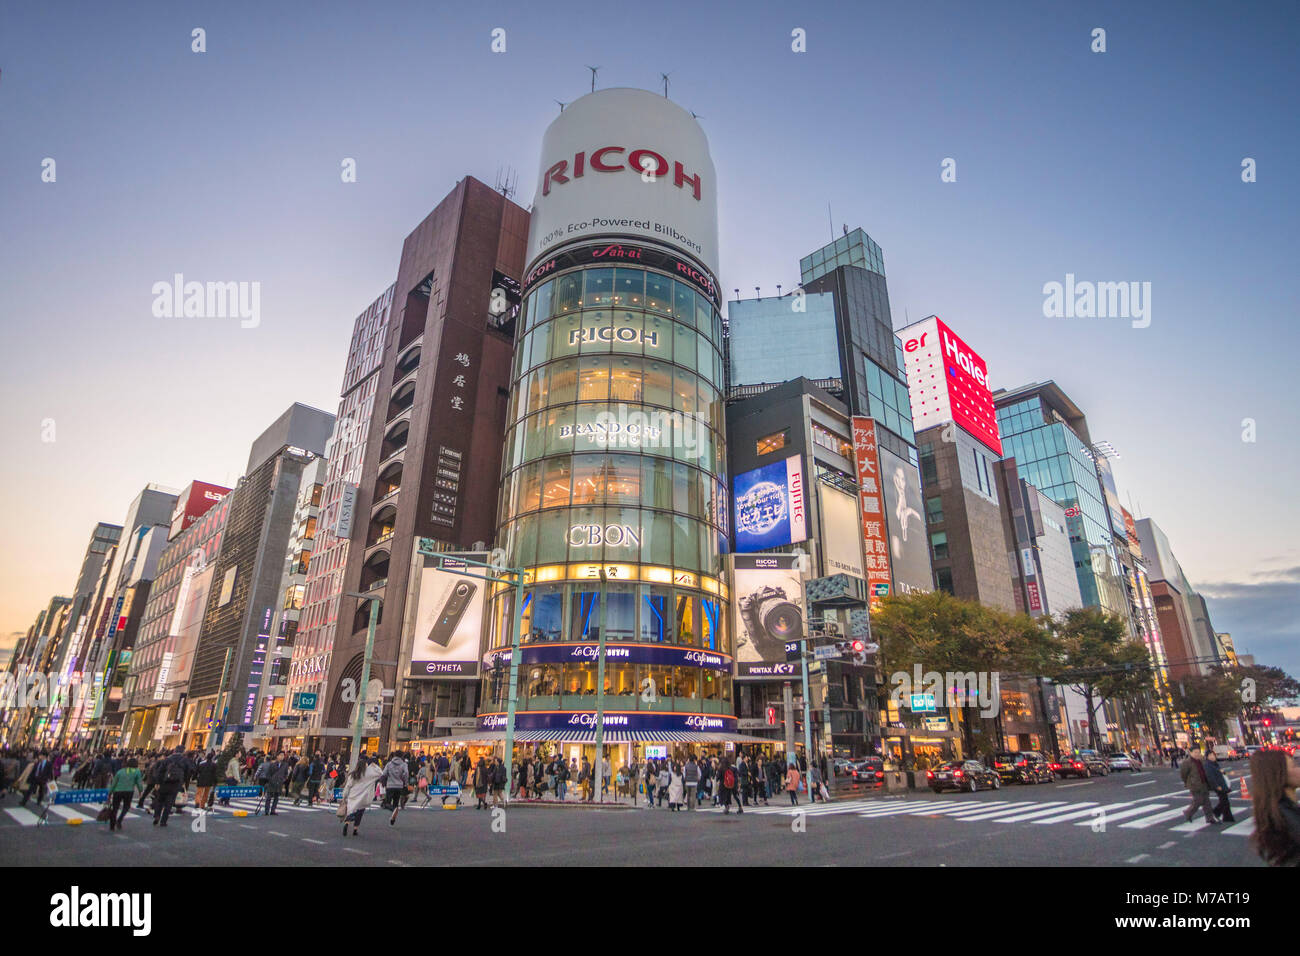 Japan, Tokyo City, Ginza District, Chuo and Harumi avenues crossing - Stock Image